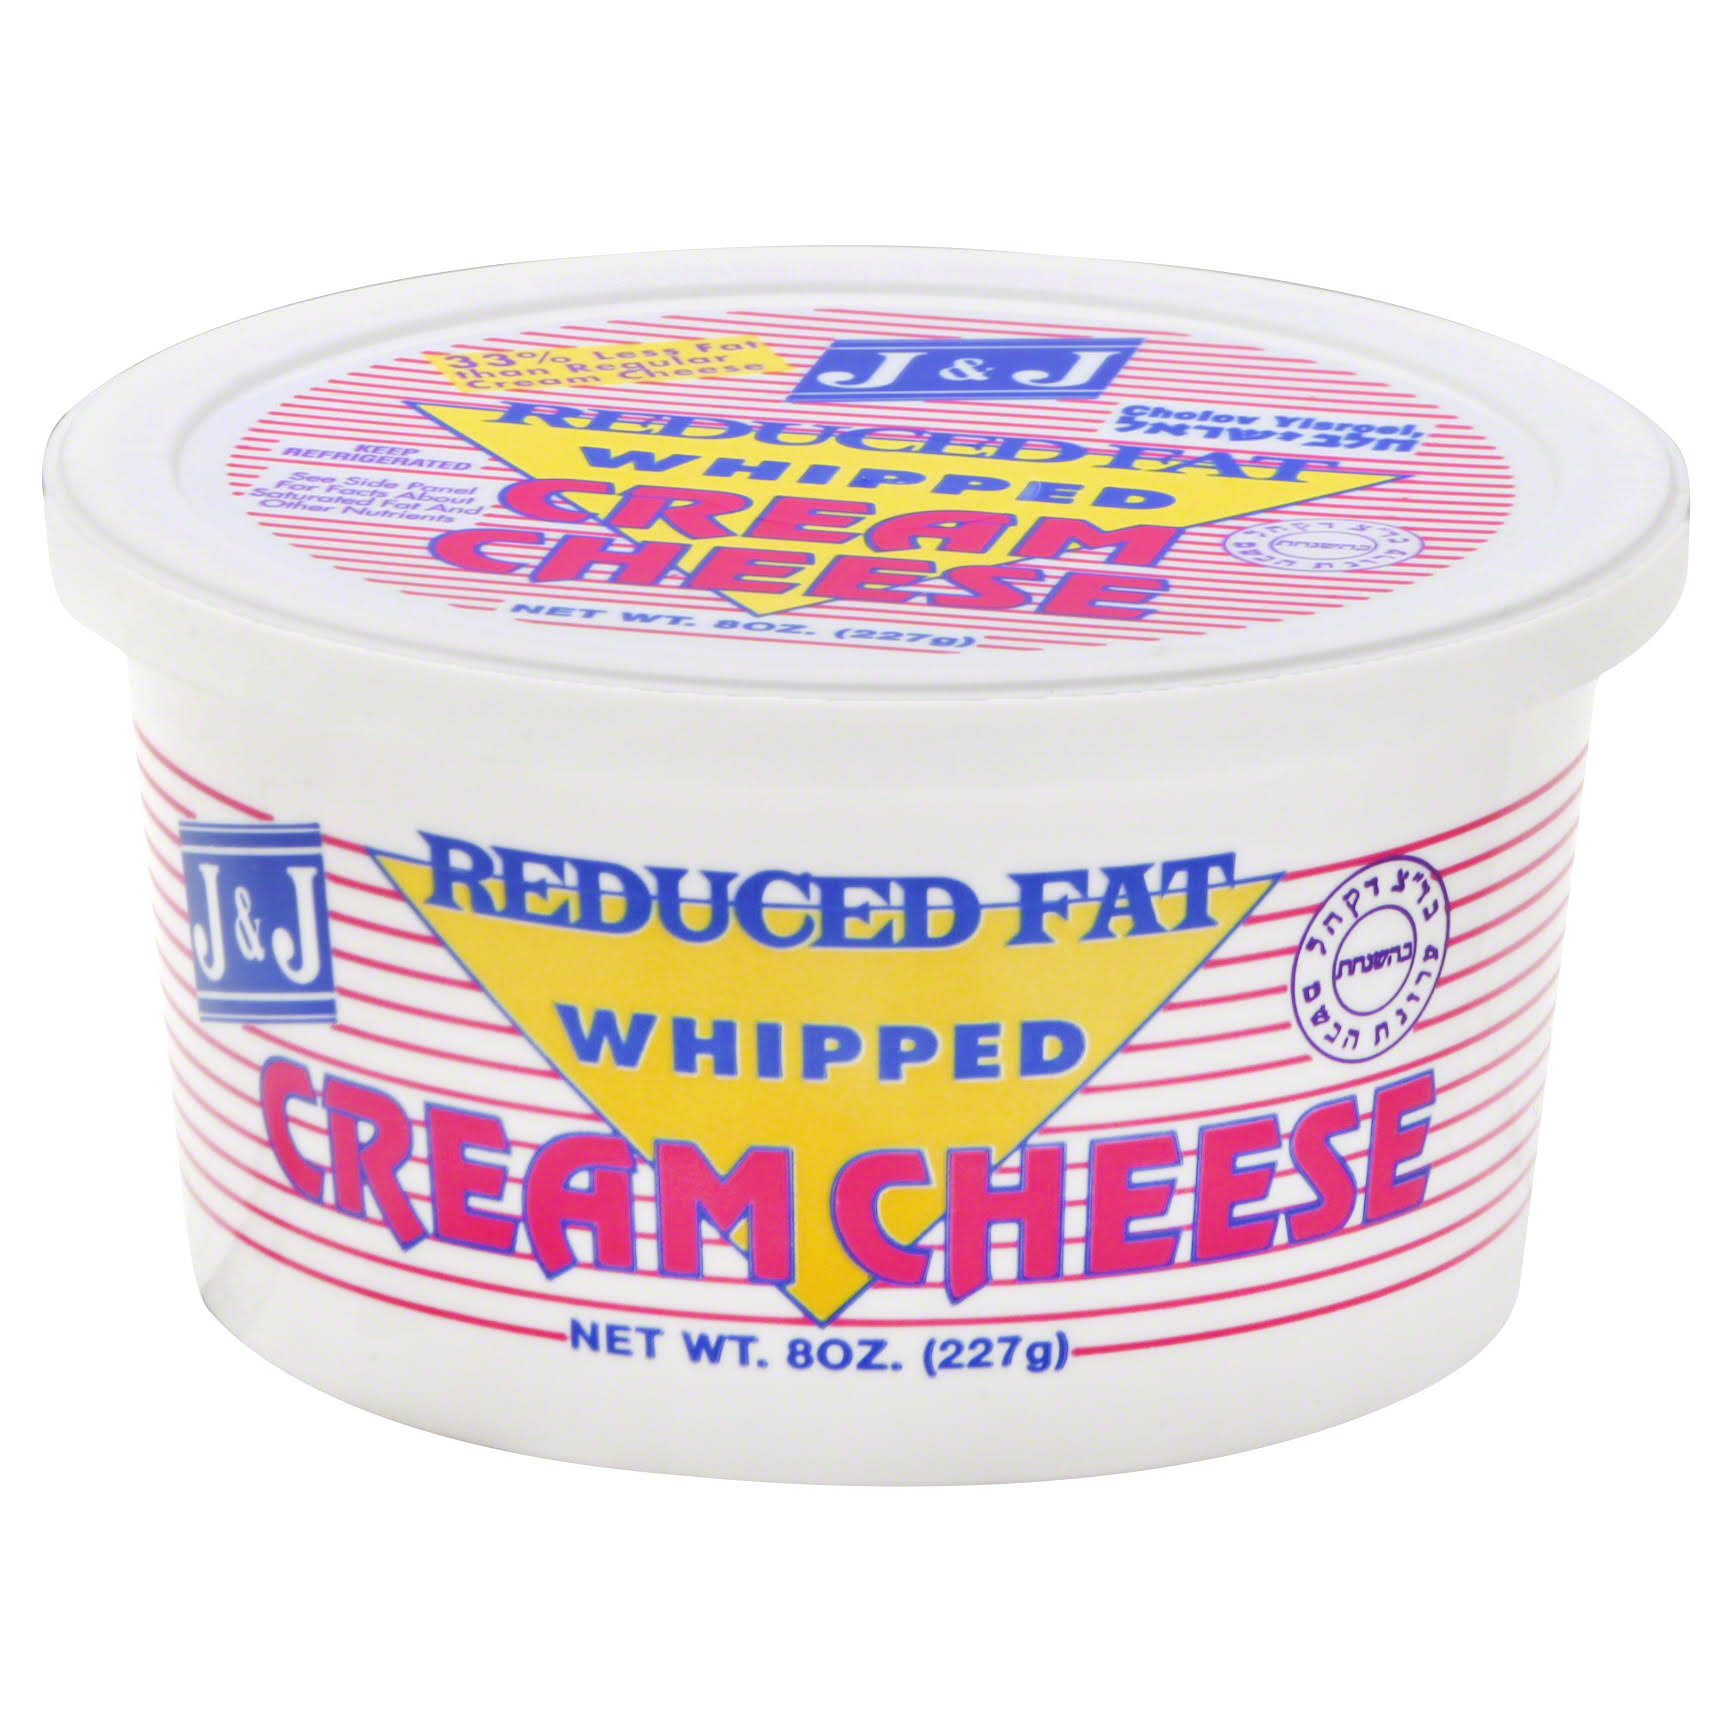 J & J Cream Cheese, Reduced Fat, Whipped - 8 oz